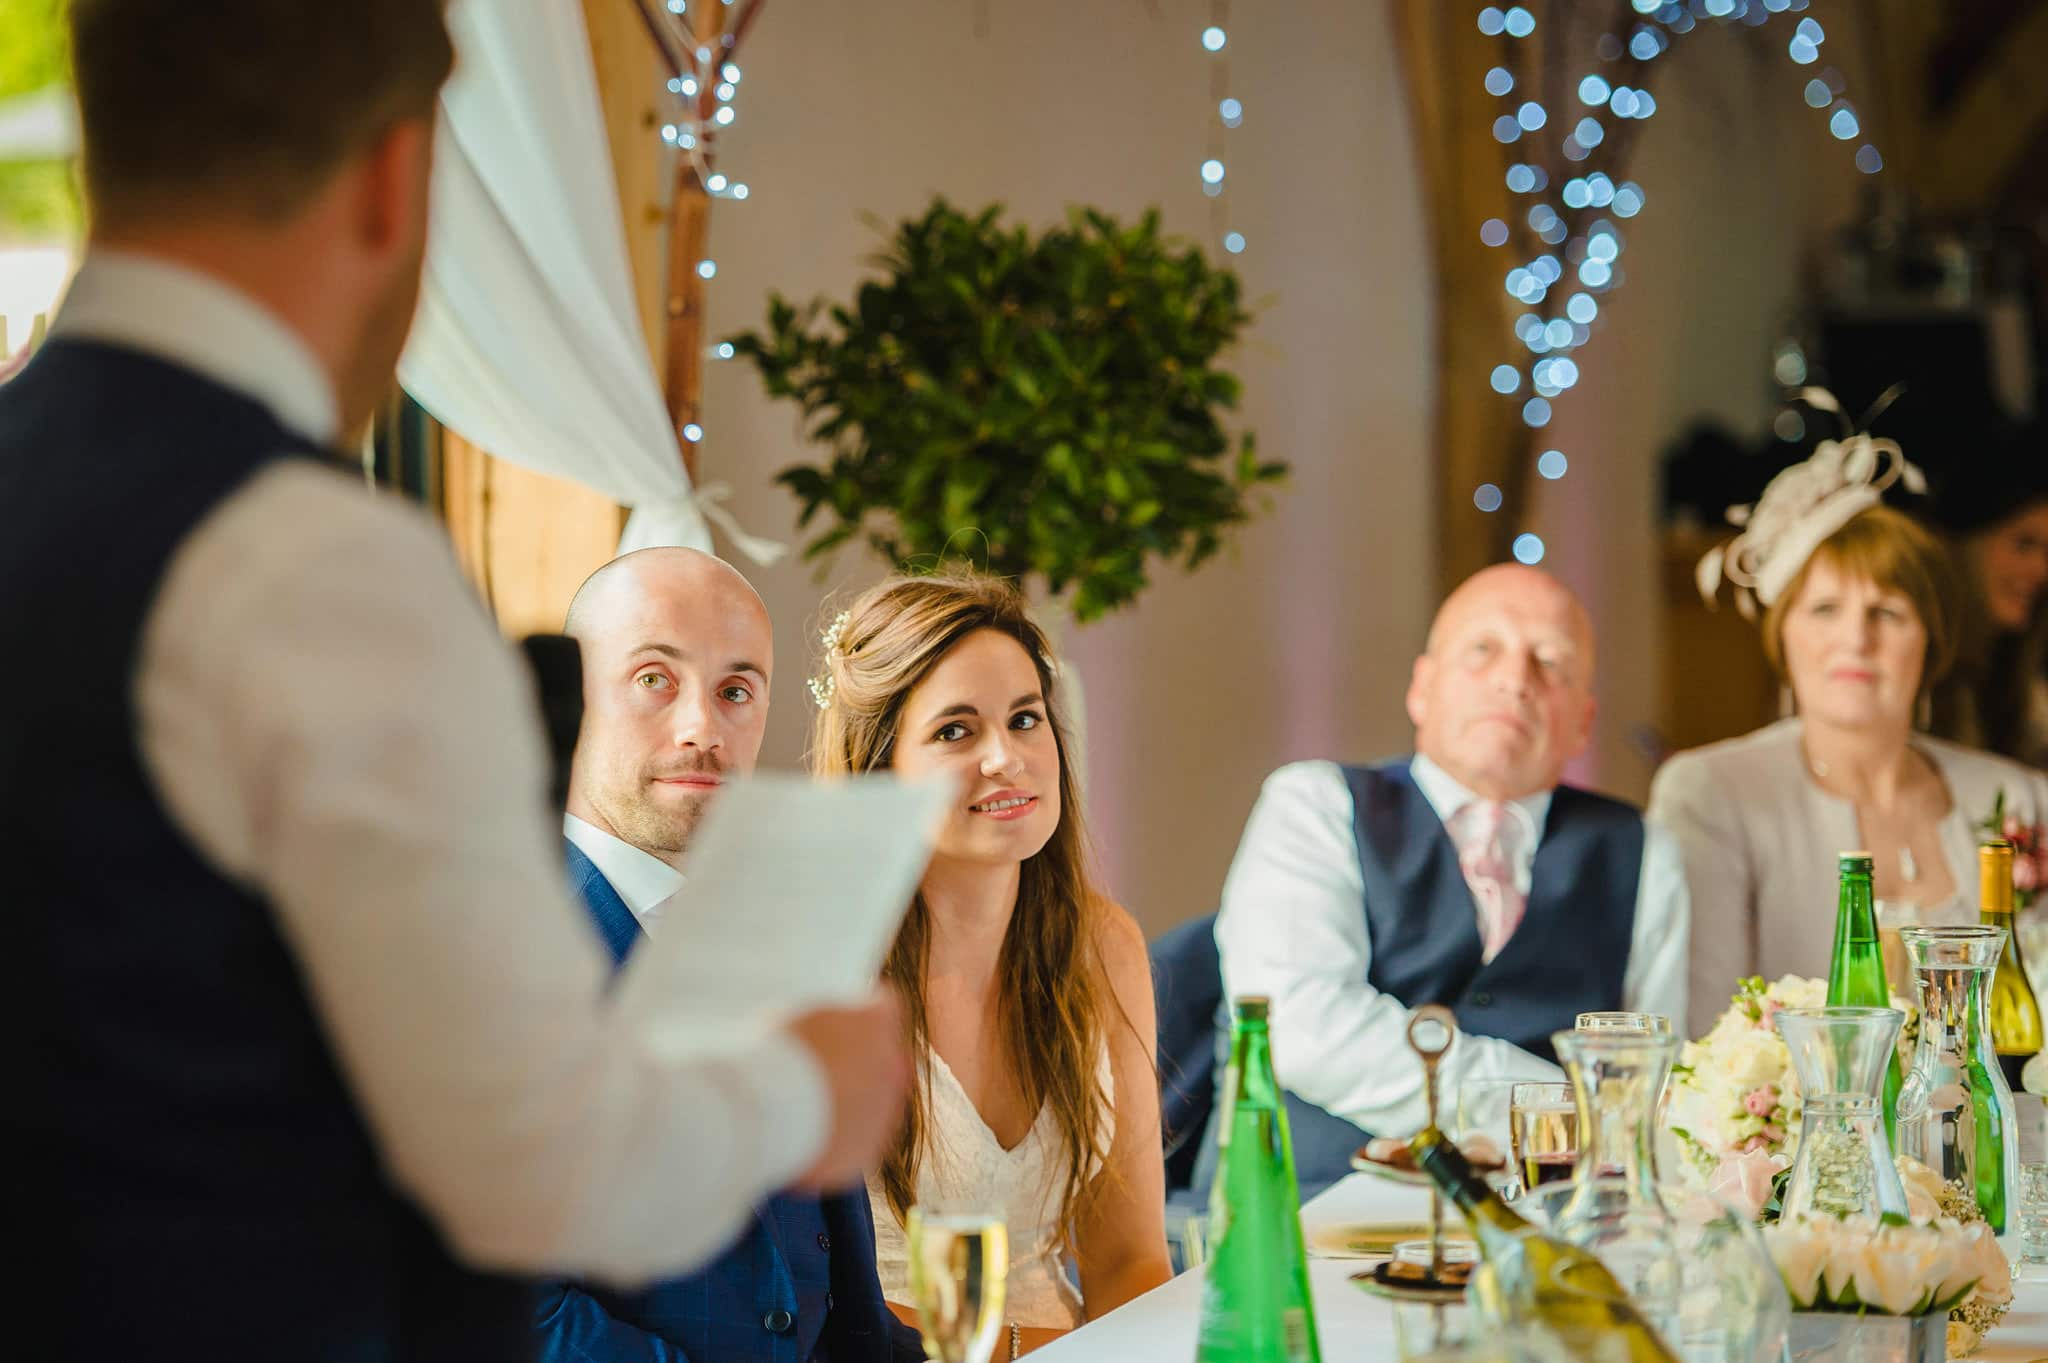 Wedding at Redhouse Barn in Stoke Prior, Worcestershire 131